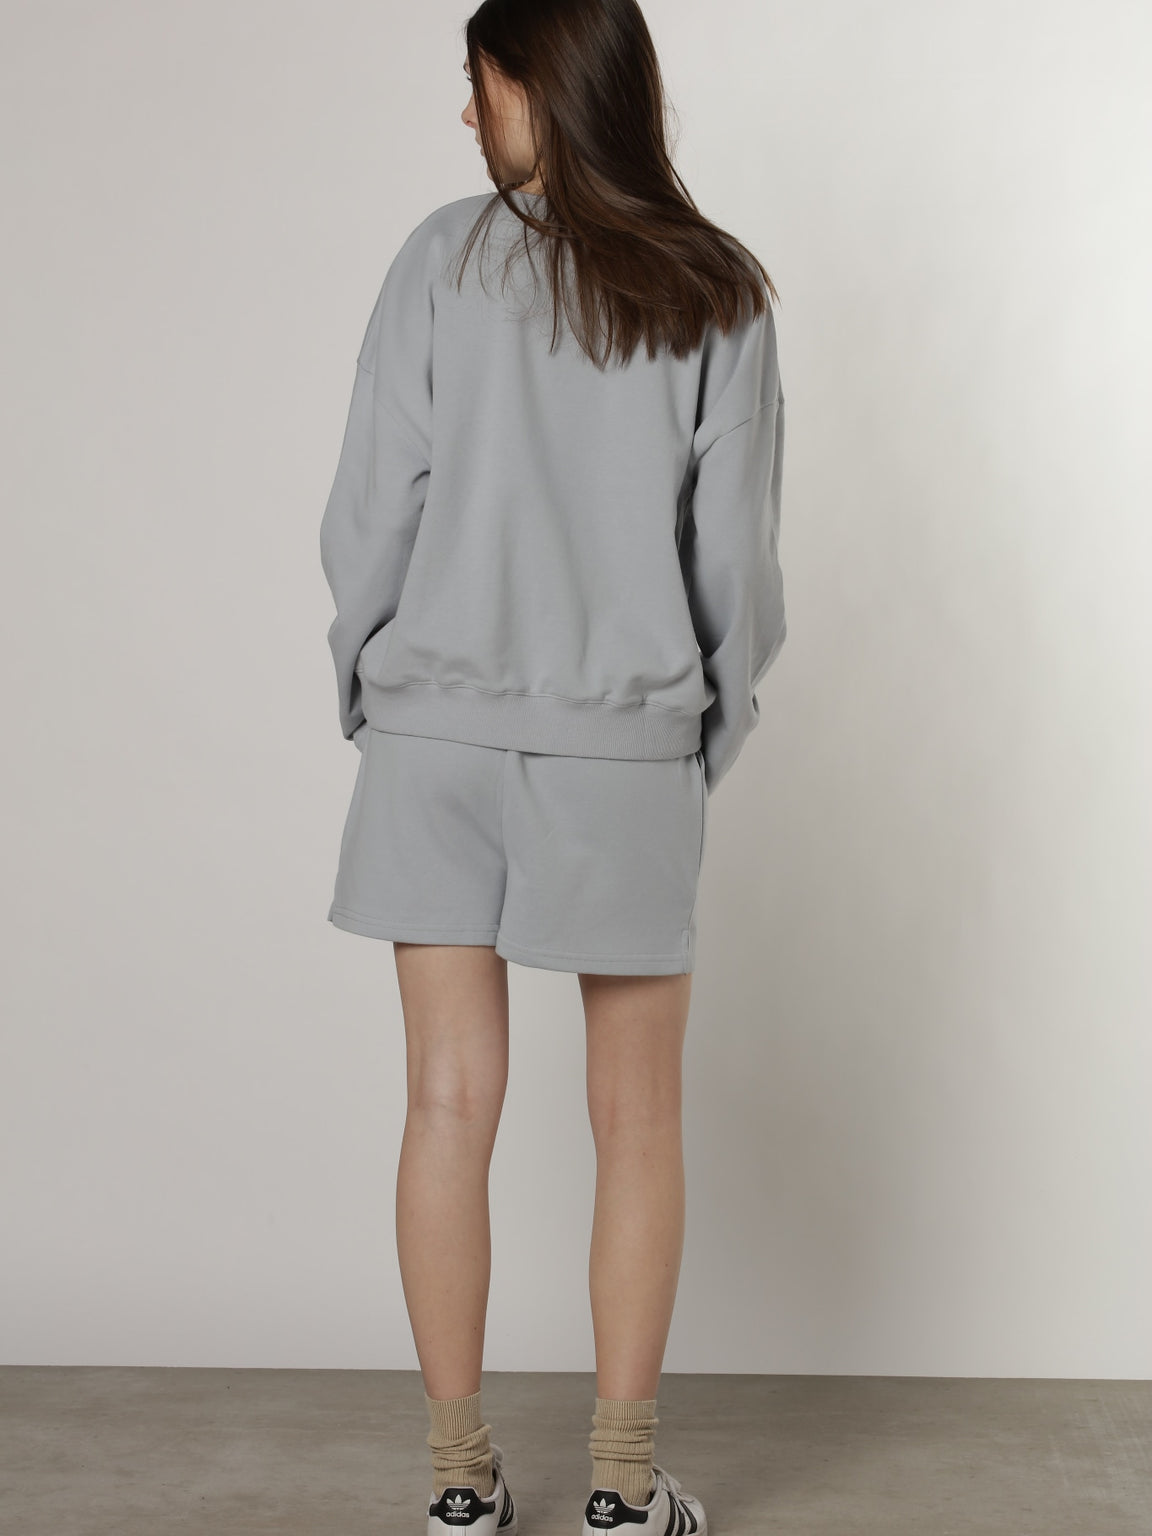 KYLIE SHORTS - DUST BLUE